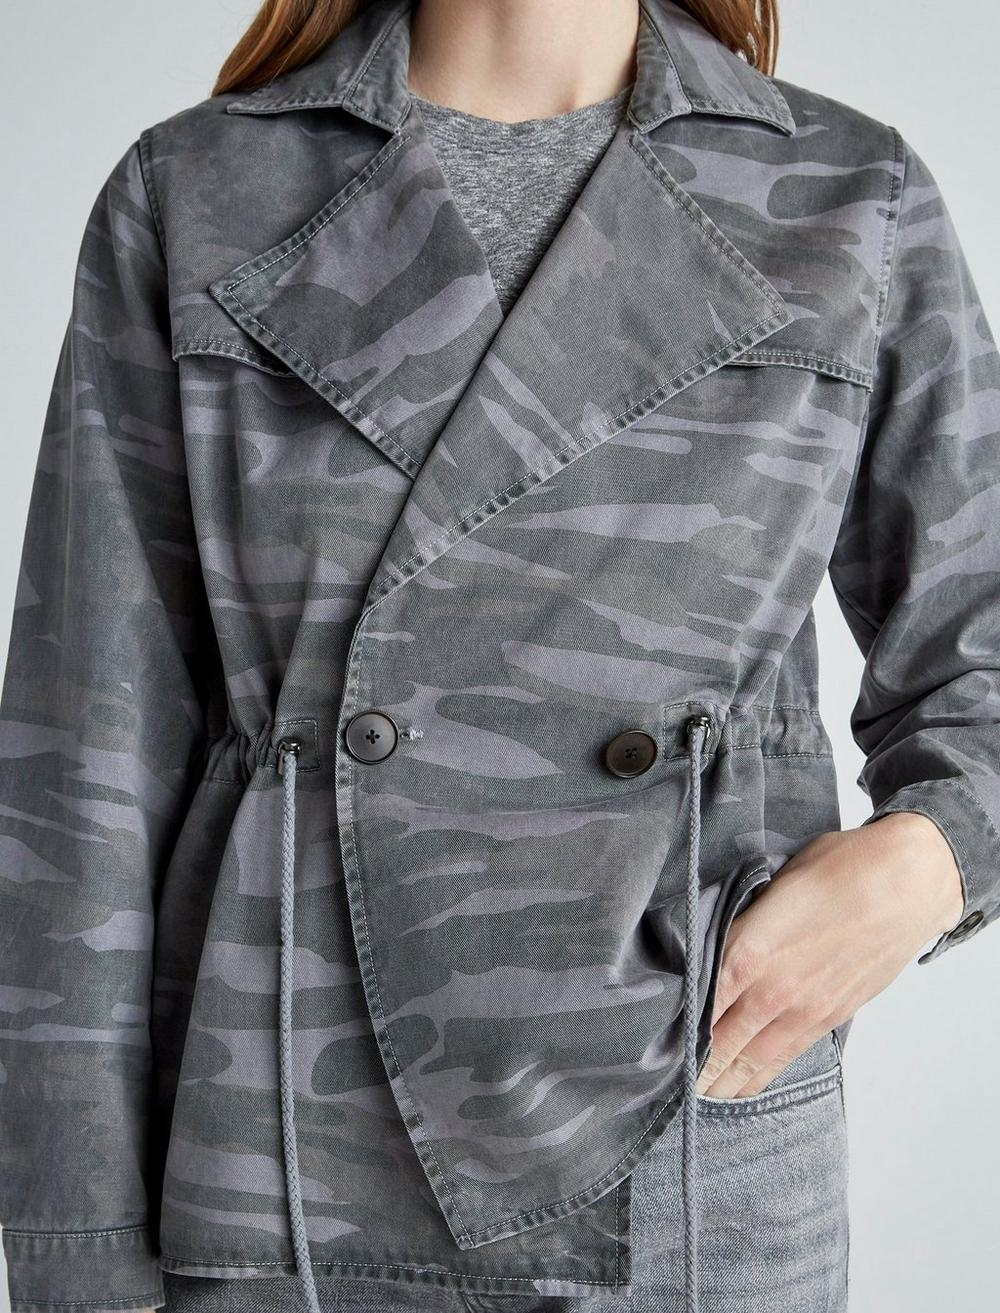 PRINTED CROPPED TRENCH COAT JACKET, image 6